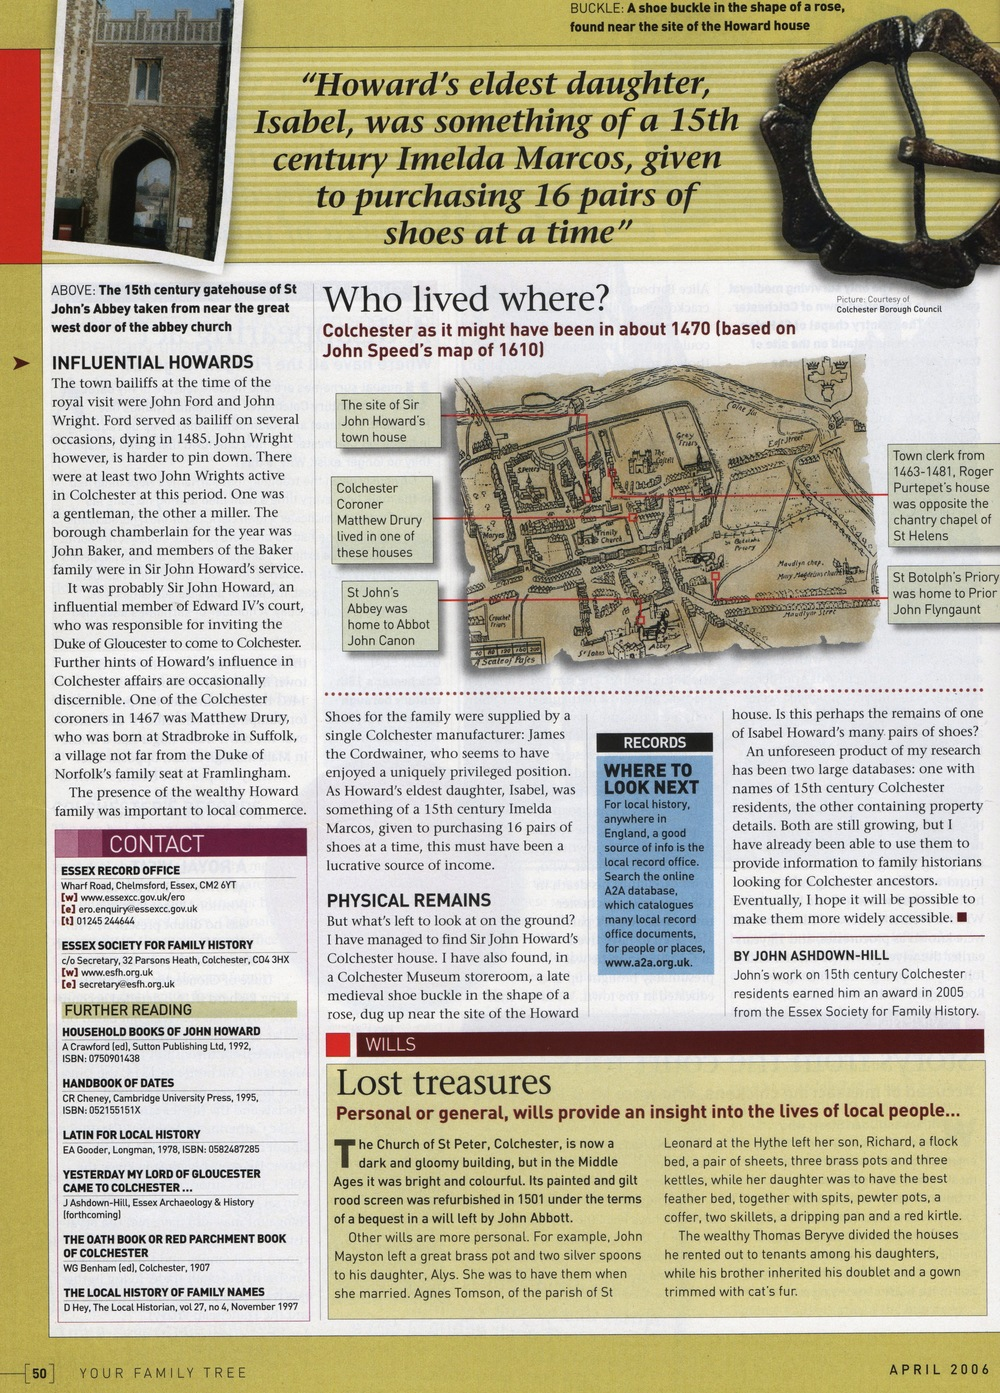 Your Family Tree magazine, April 2006c.jpg